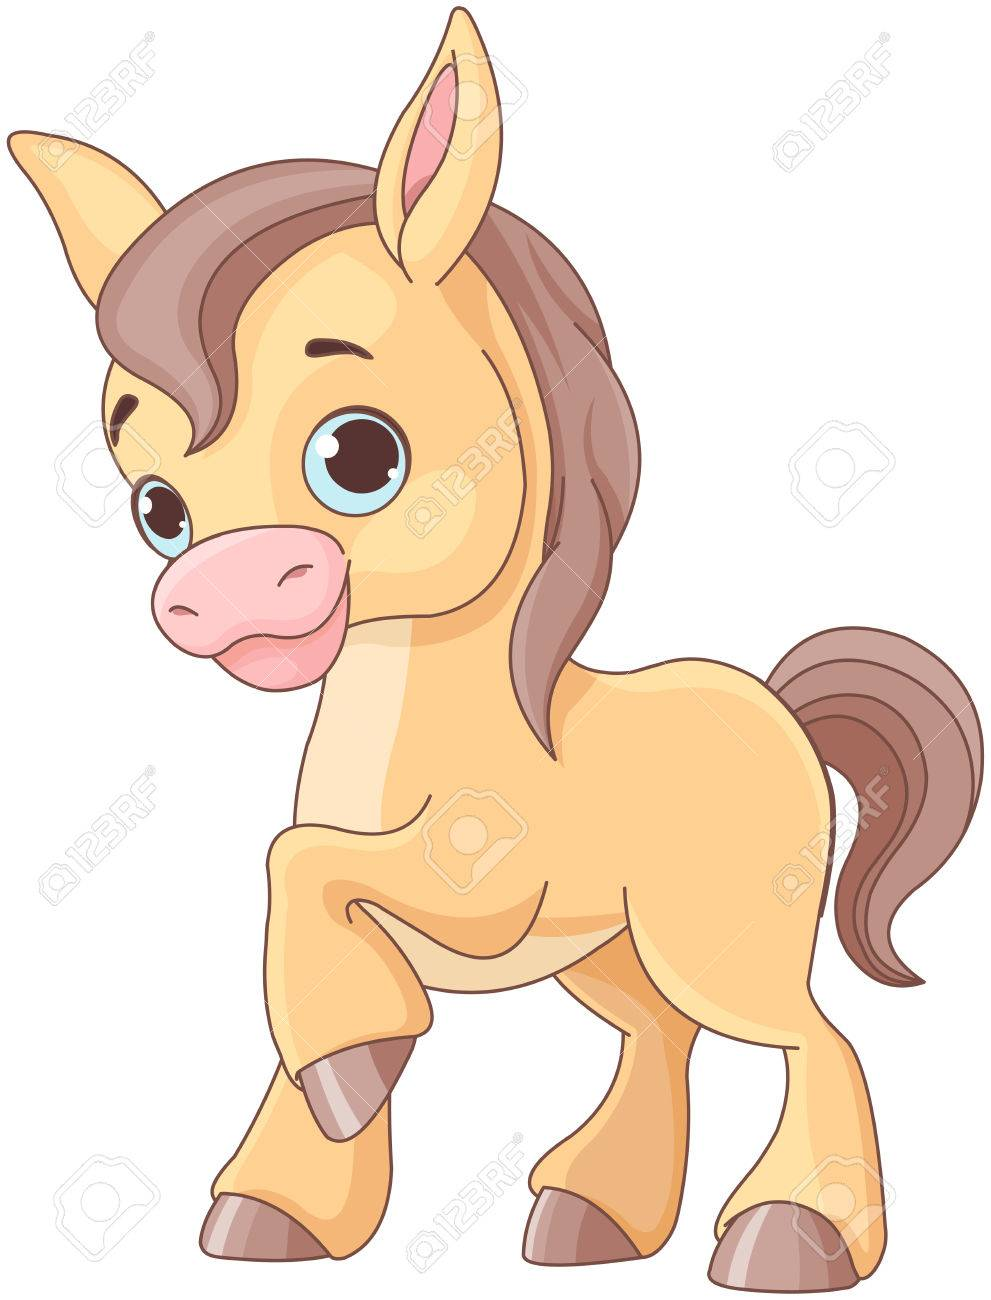 Illustration Of Cute Baby Horse Royalty Free Cliparts Vectors And Stock Illustration Image 83315078